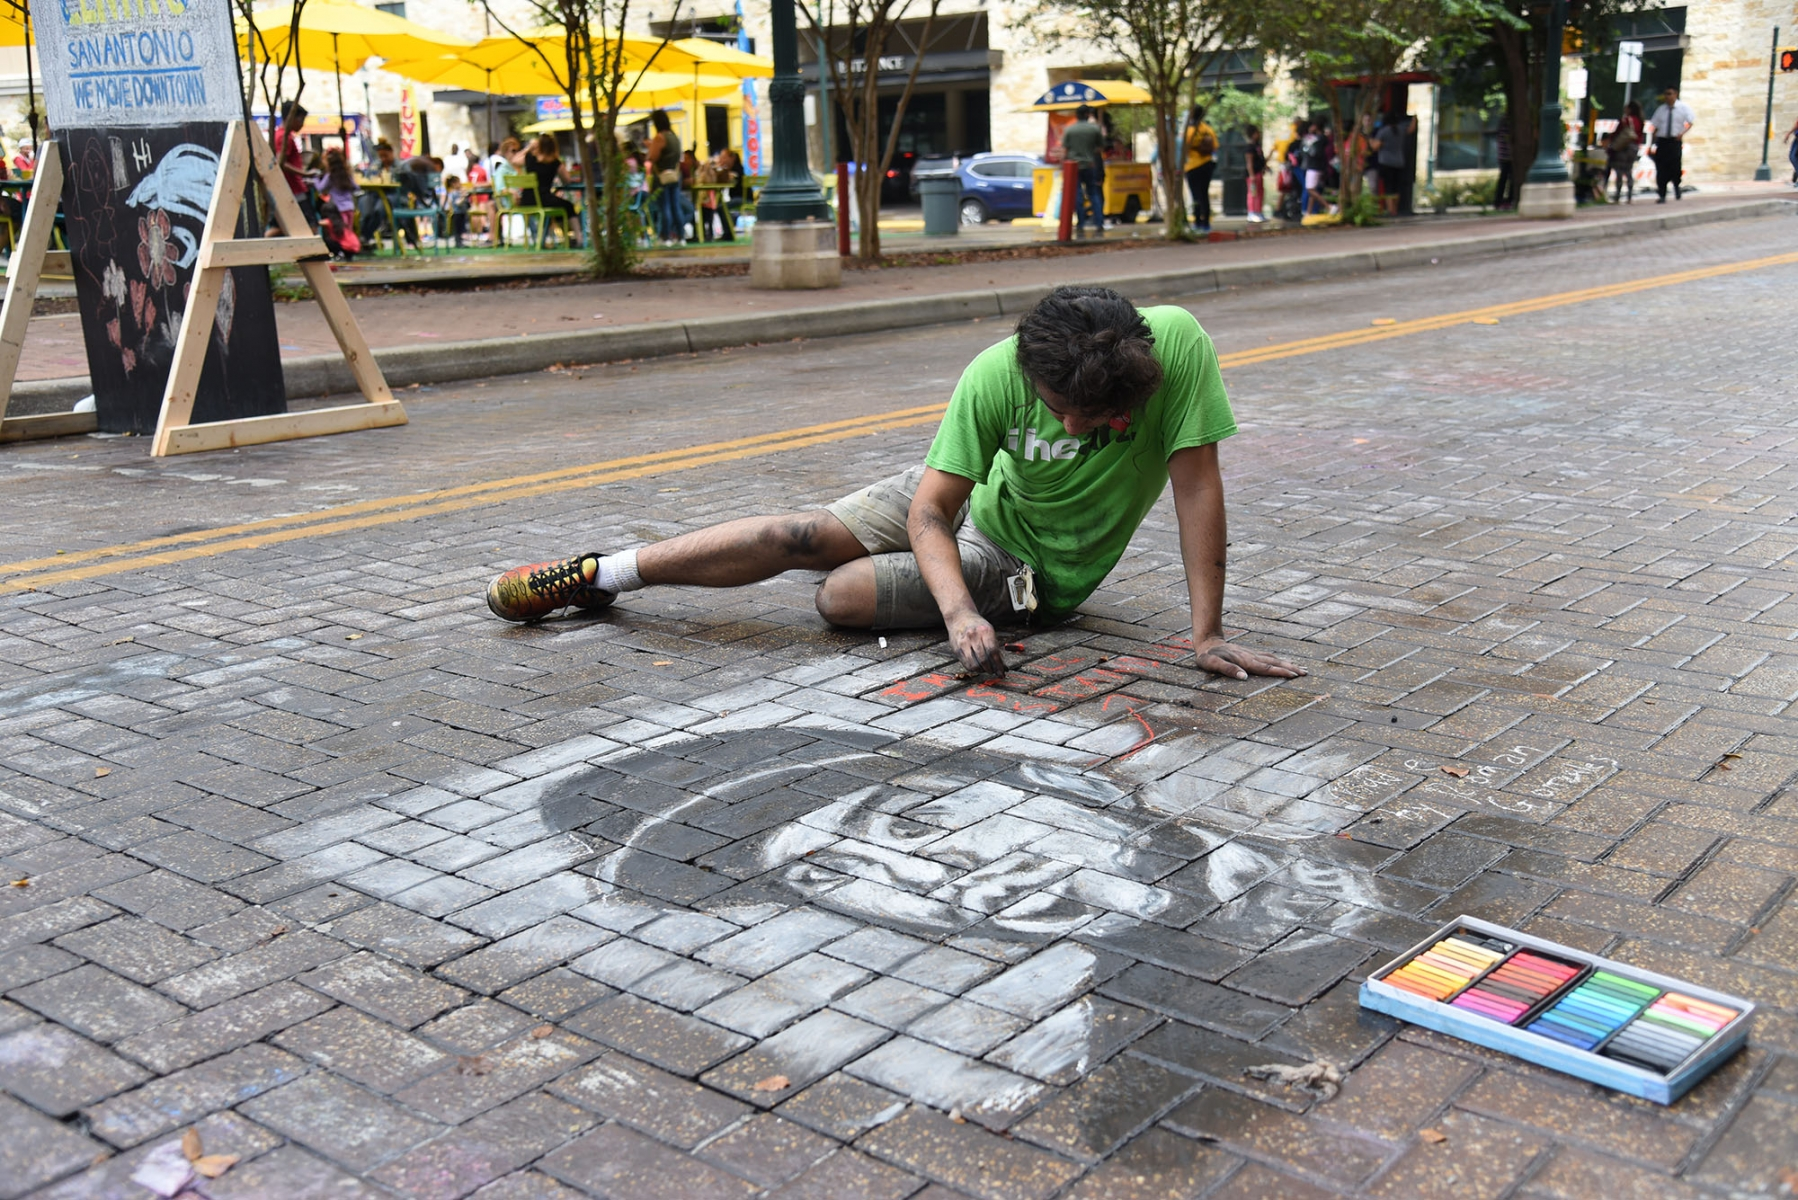 Roman Gonzales, junior at KIPP University Prep draws at the 15th annual Chalk It Up Oct. 13 in downtown San Antonio. <em><b>Photo by V. Finster | Heron</b></em>